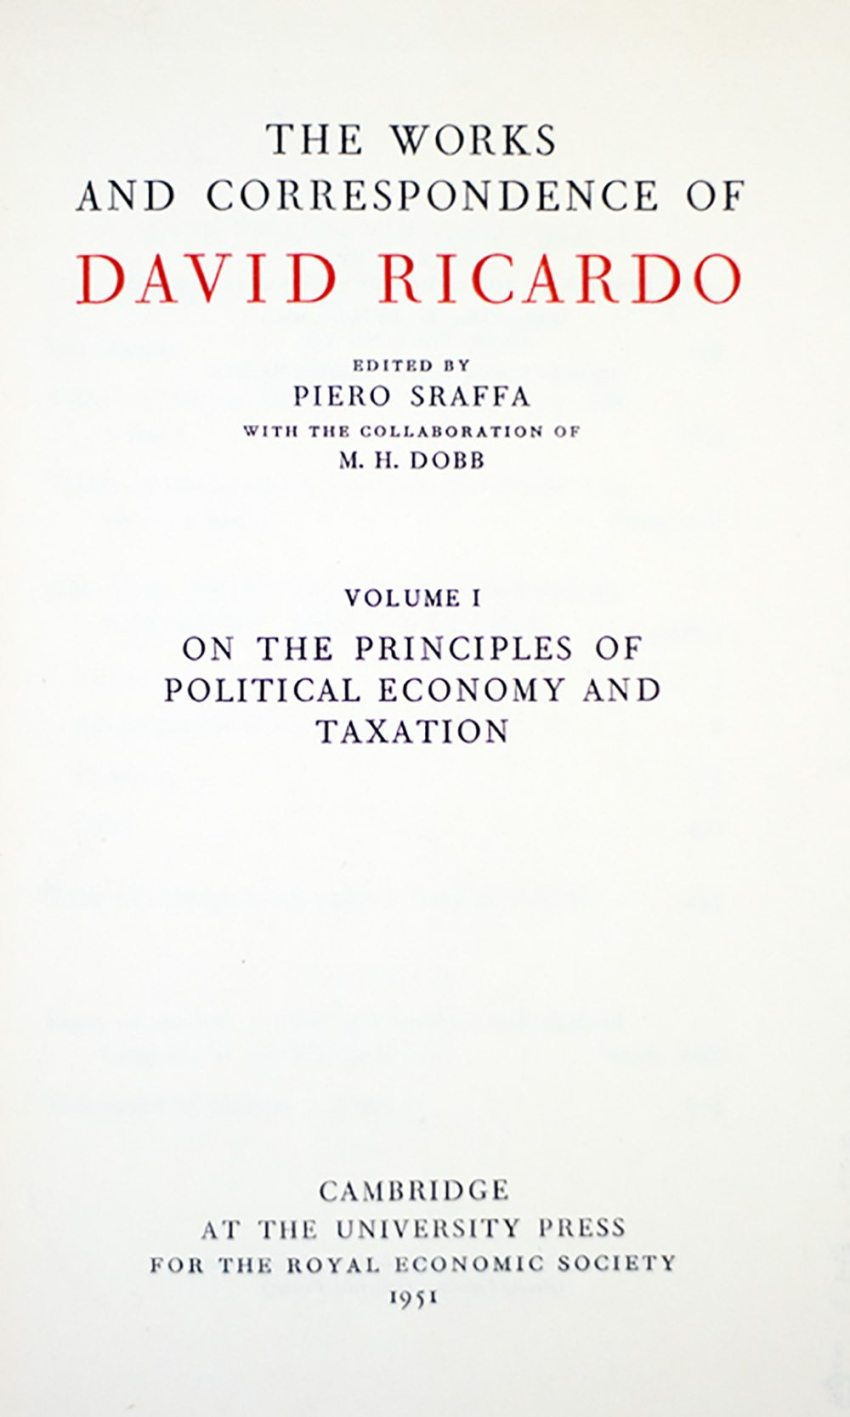 The Works And Correspondence Of David Ricardo.